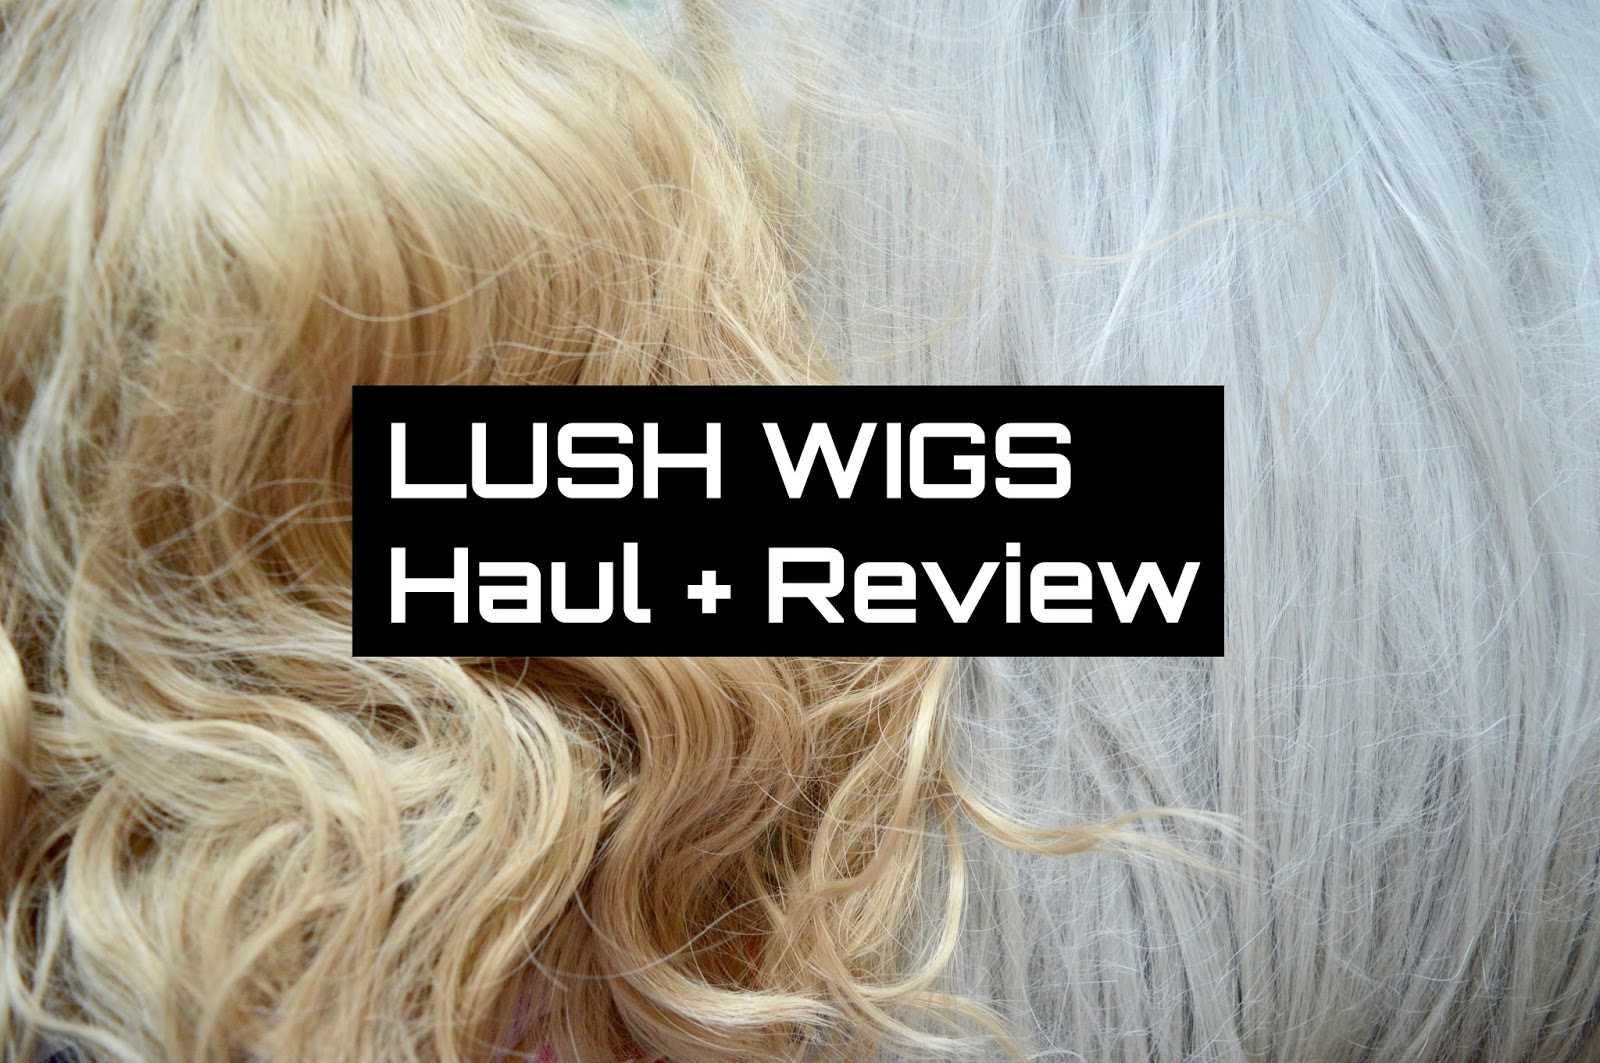 lush wigs haul and review